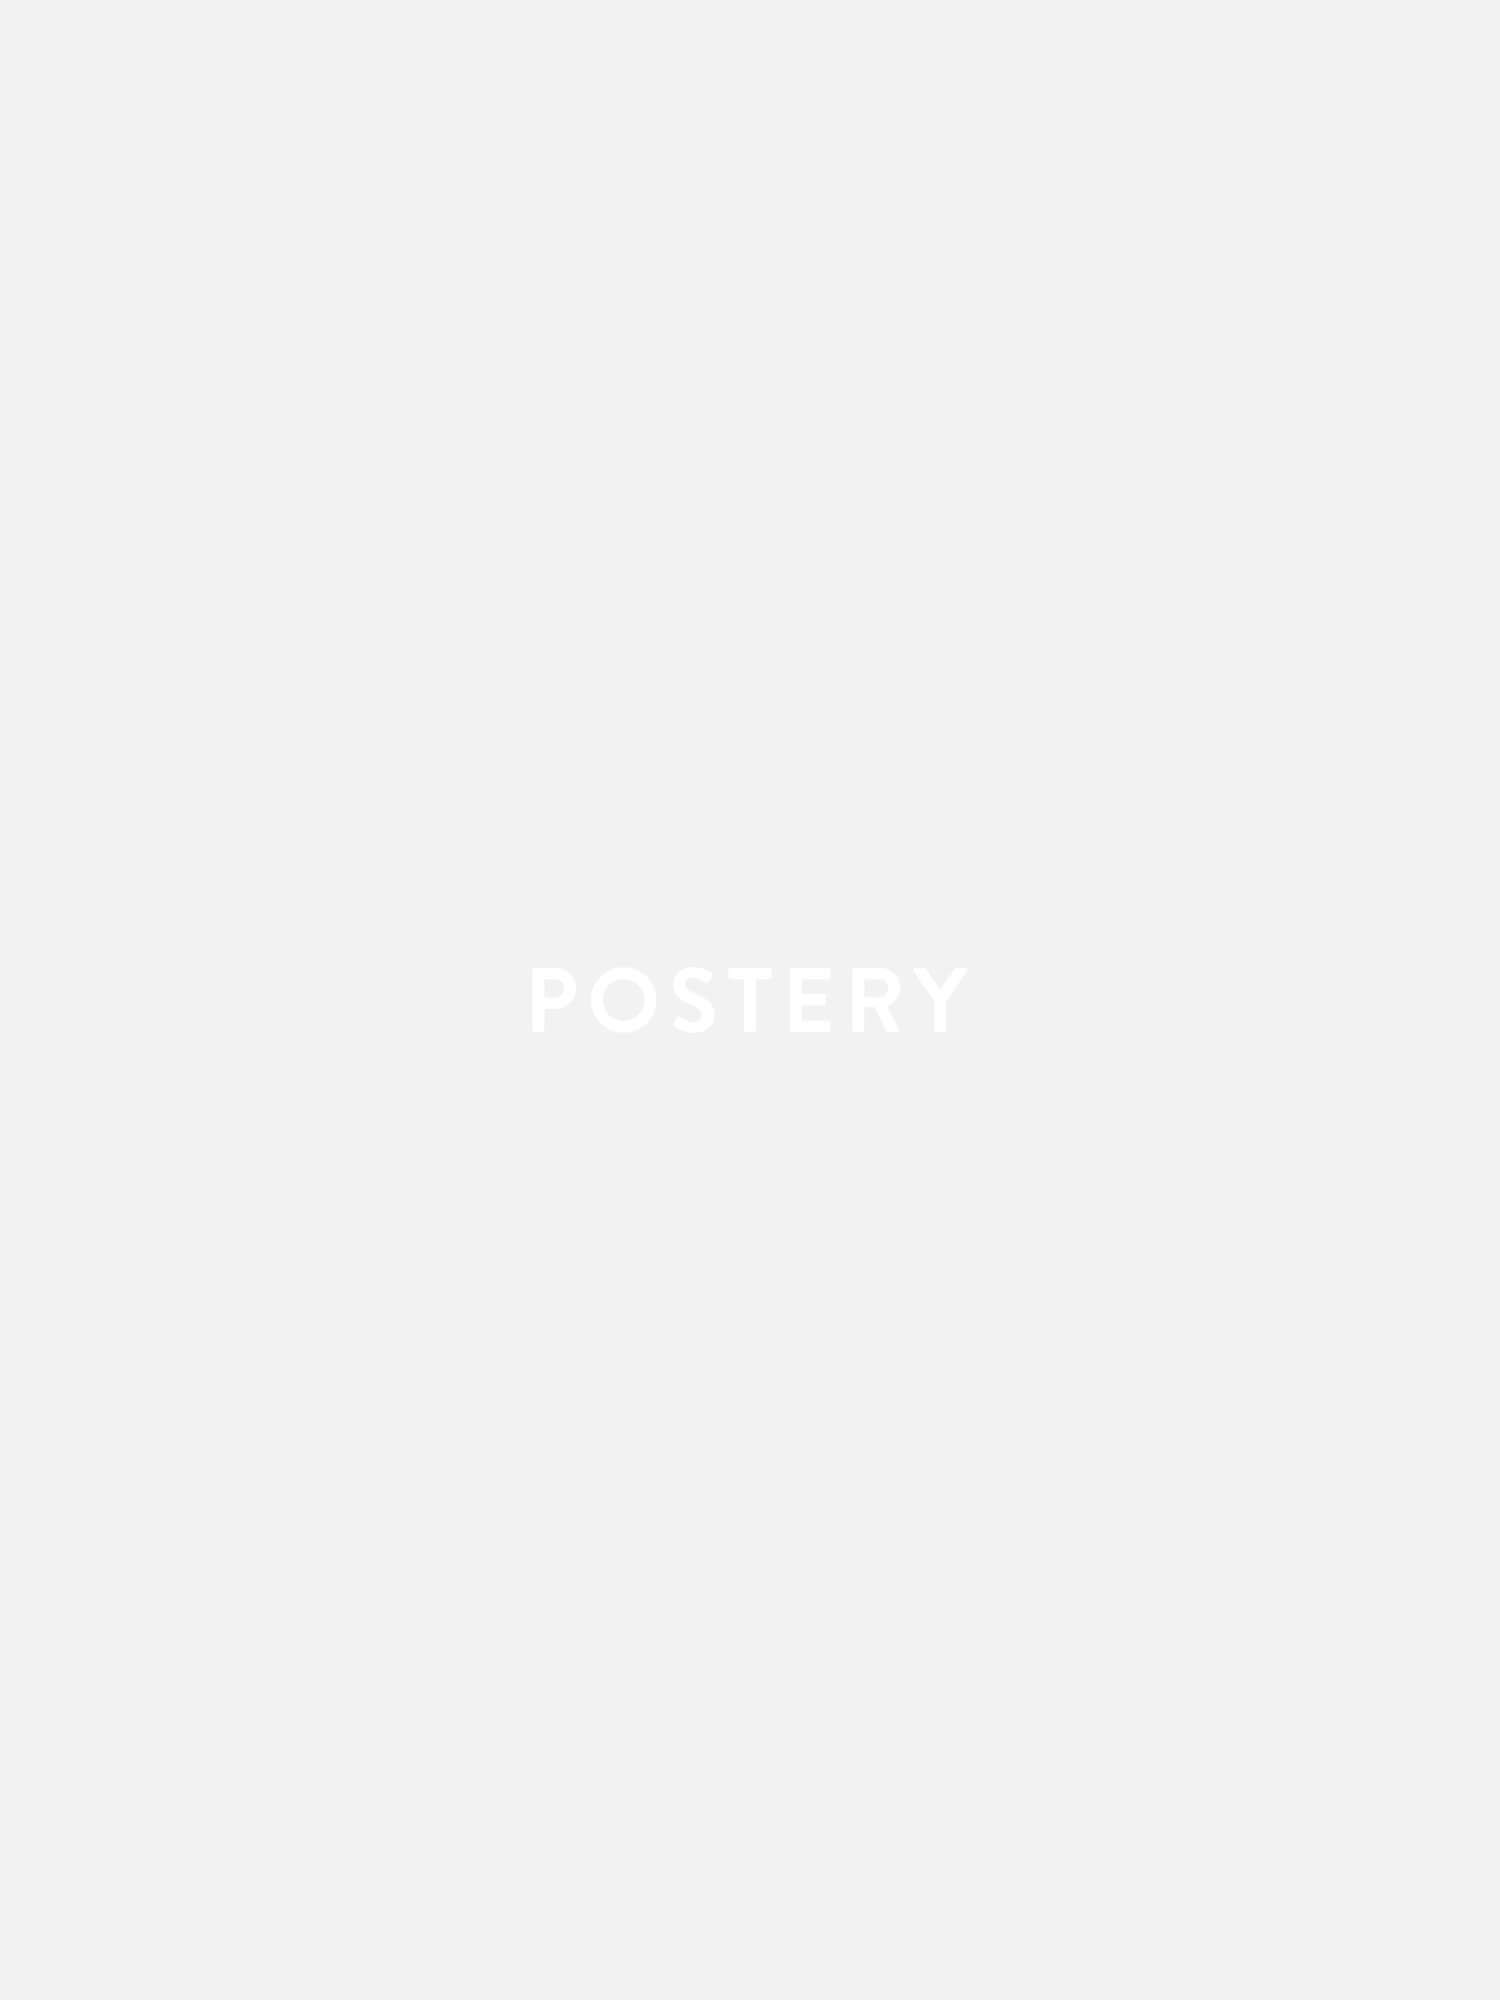 Champagne Soup Poster